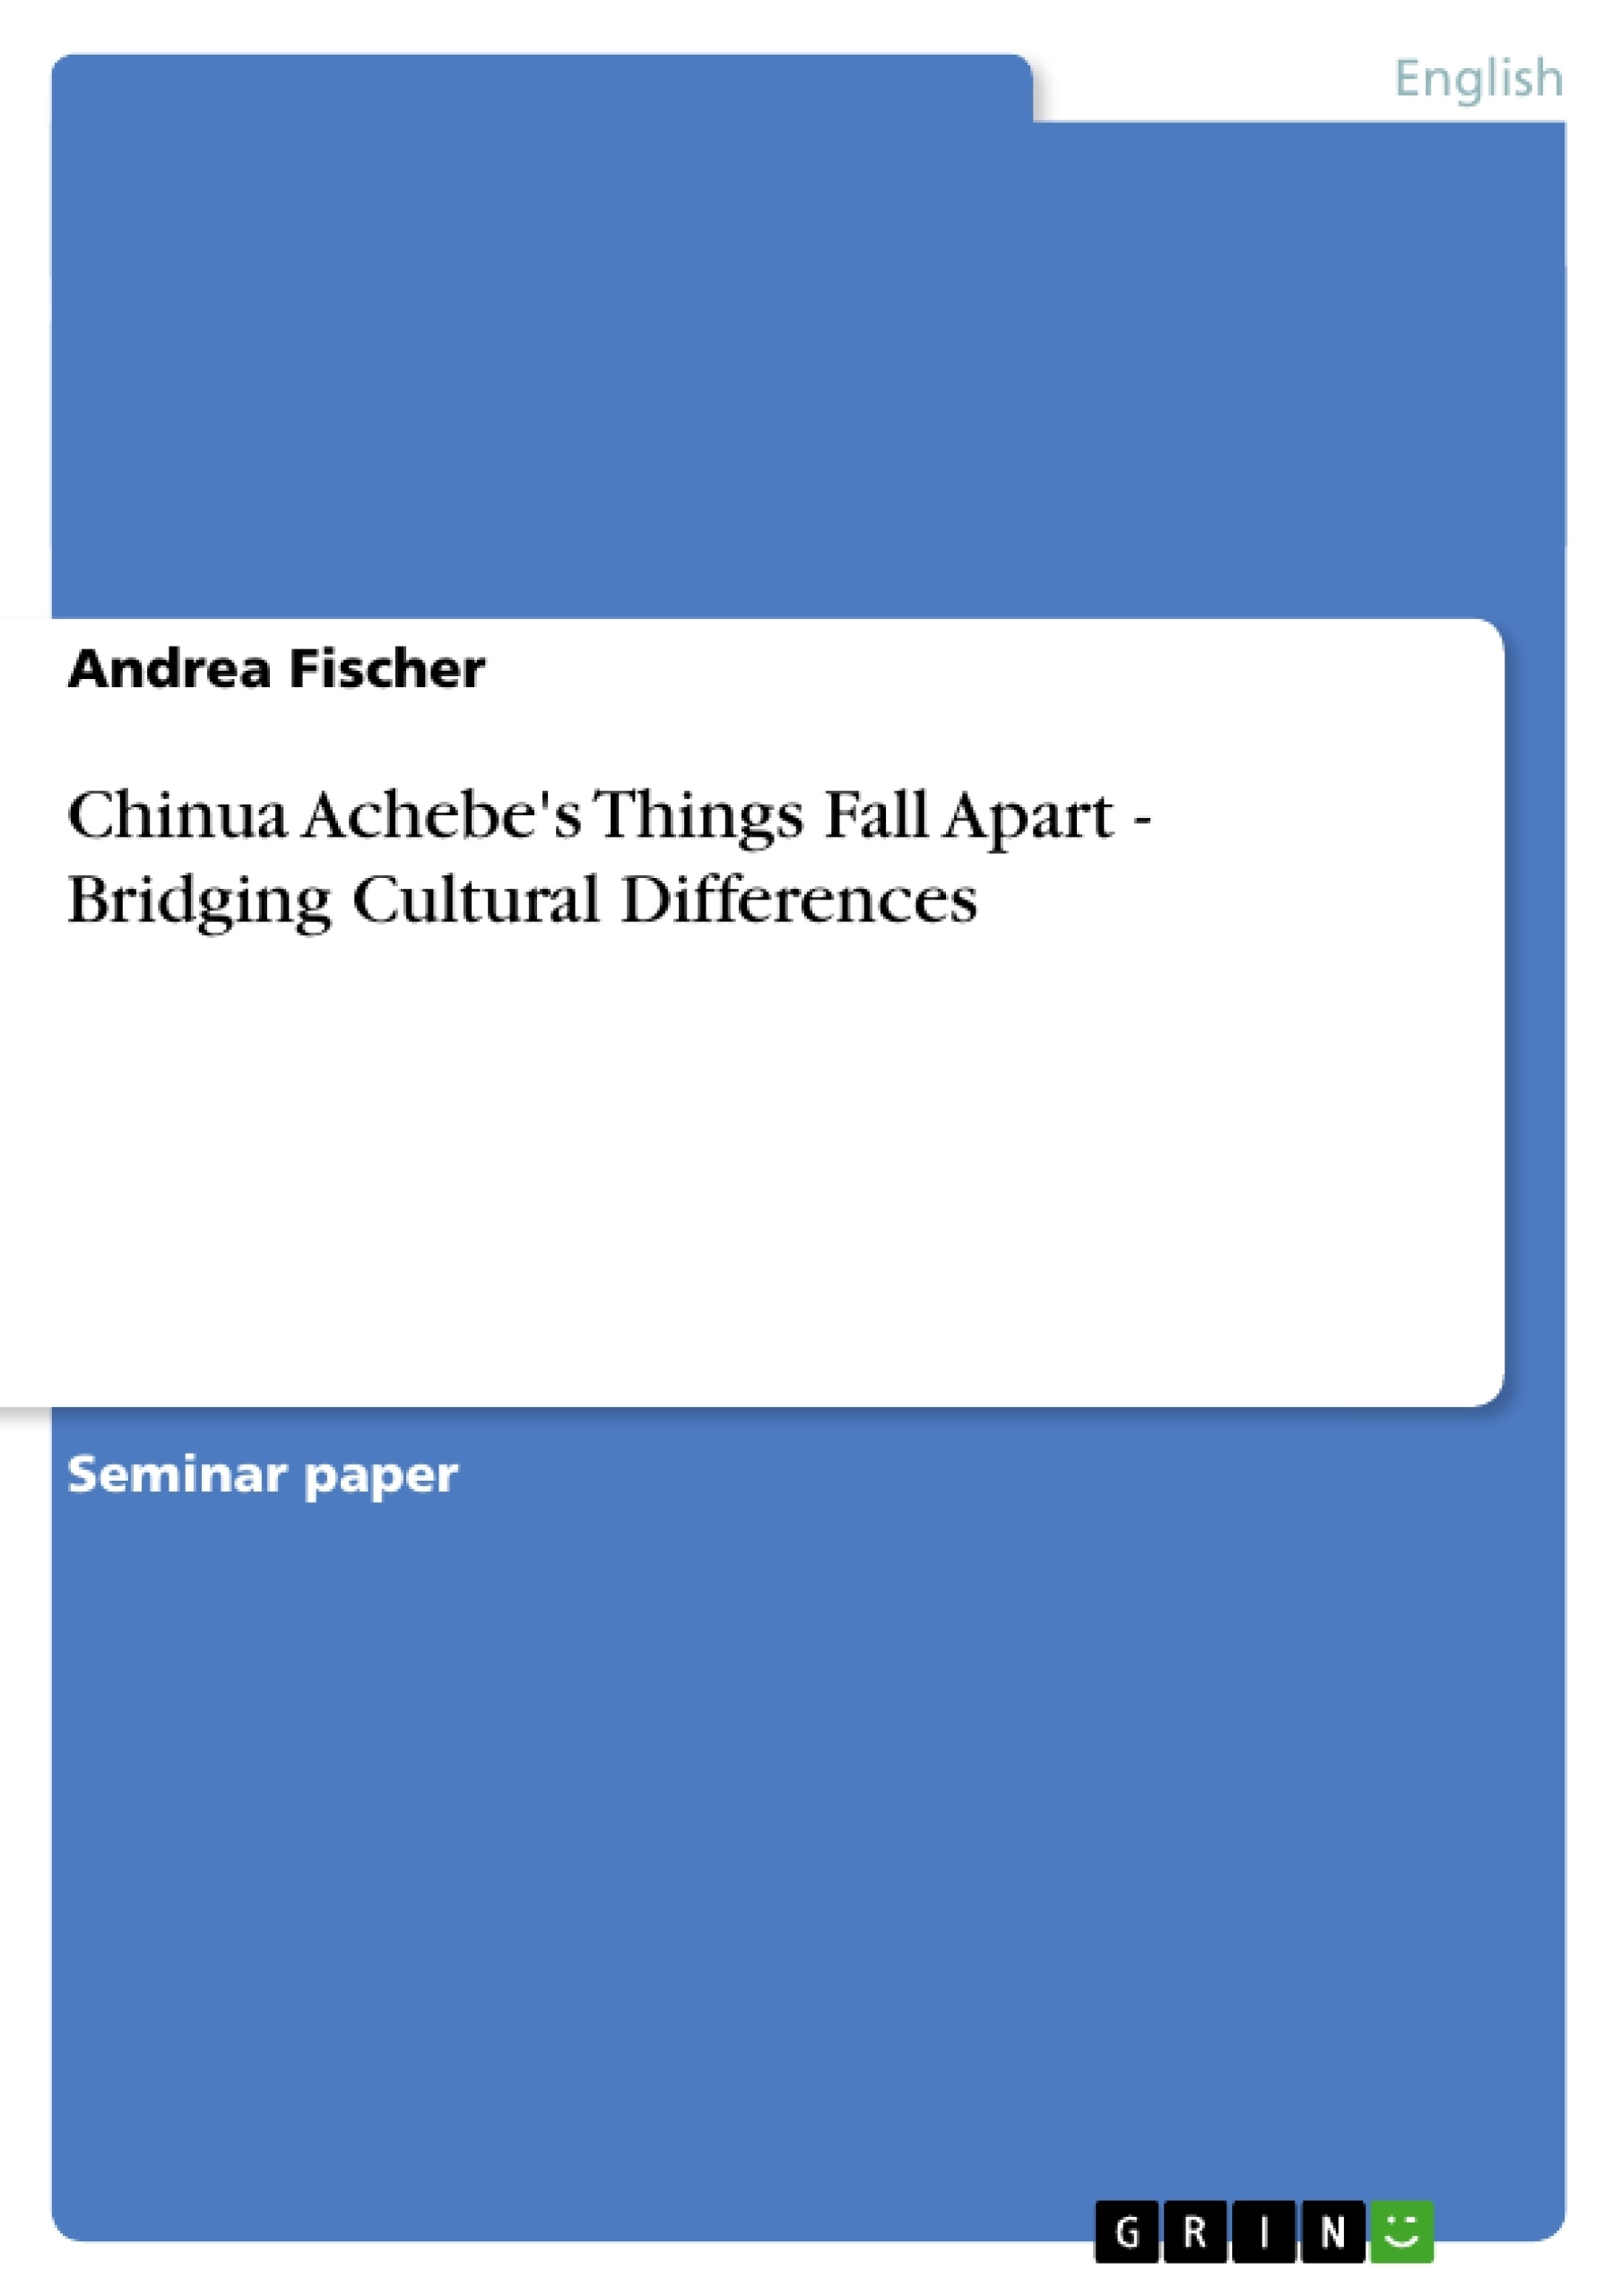 Title: Chinua Achebe's Things Fall Apart - Bridging Cultural Differences